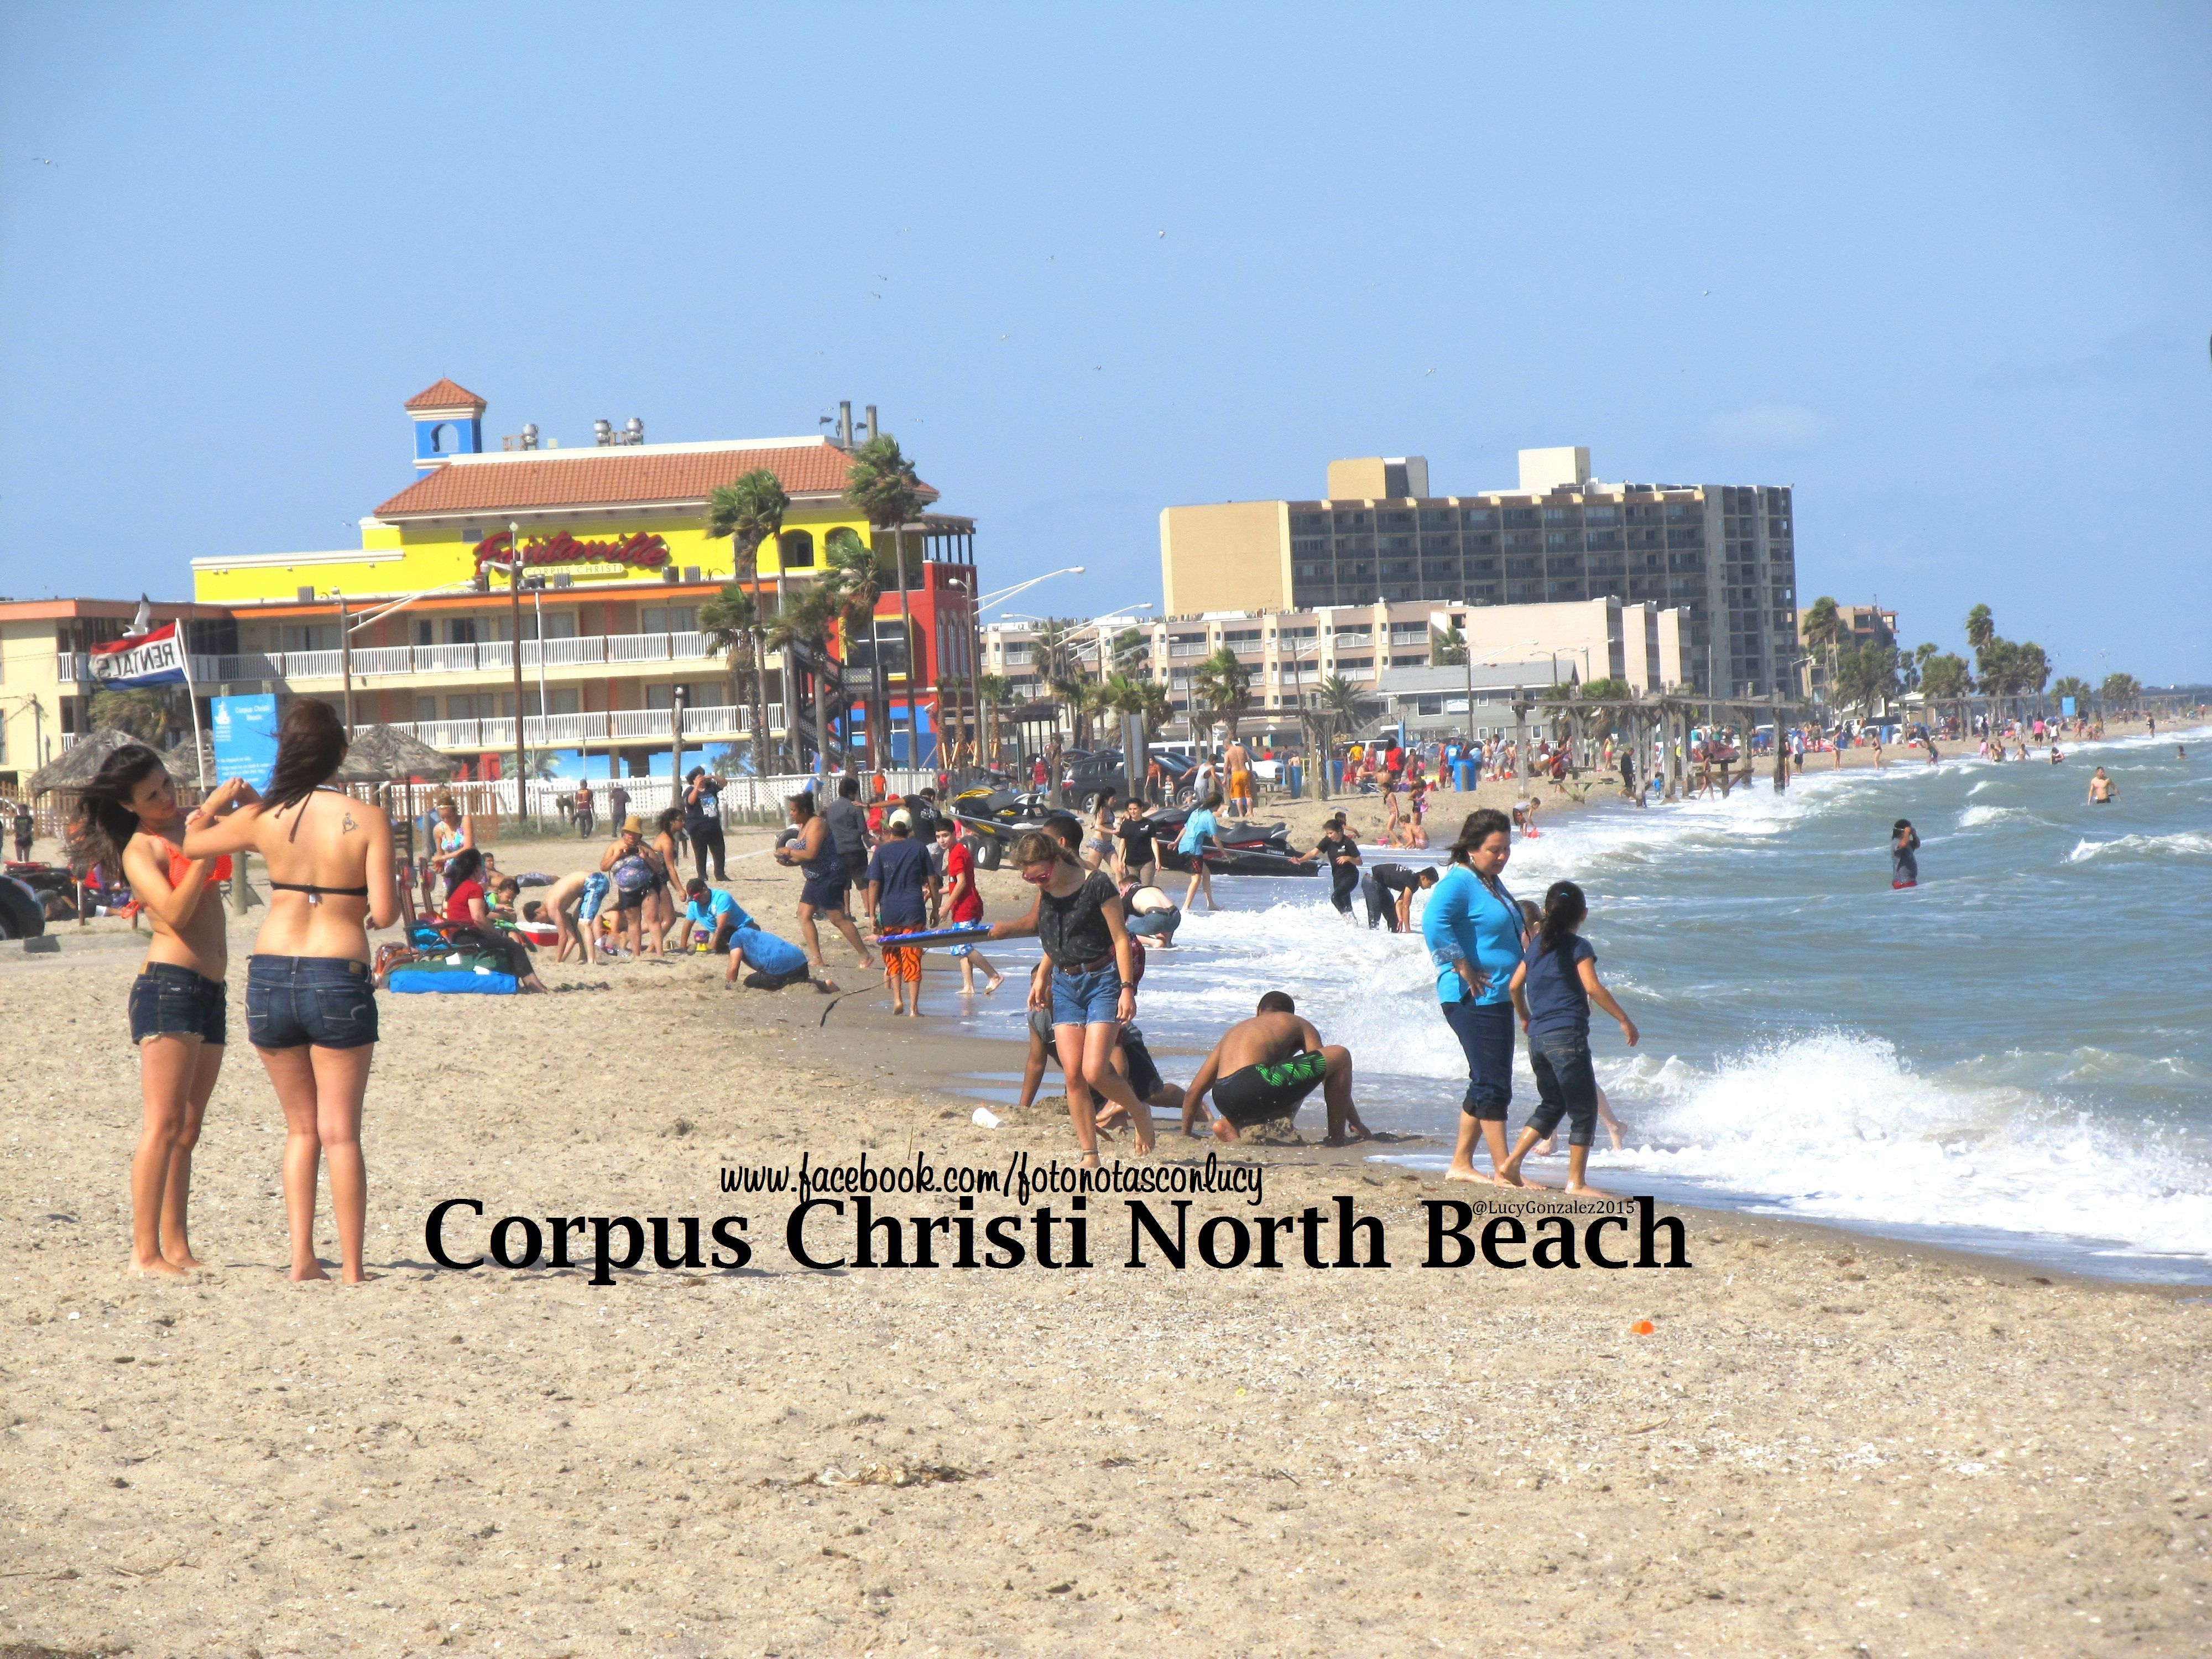 North Beach Corpus Christi Texas Also Known As Rincon Point A Section Of Located On The End City